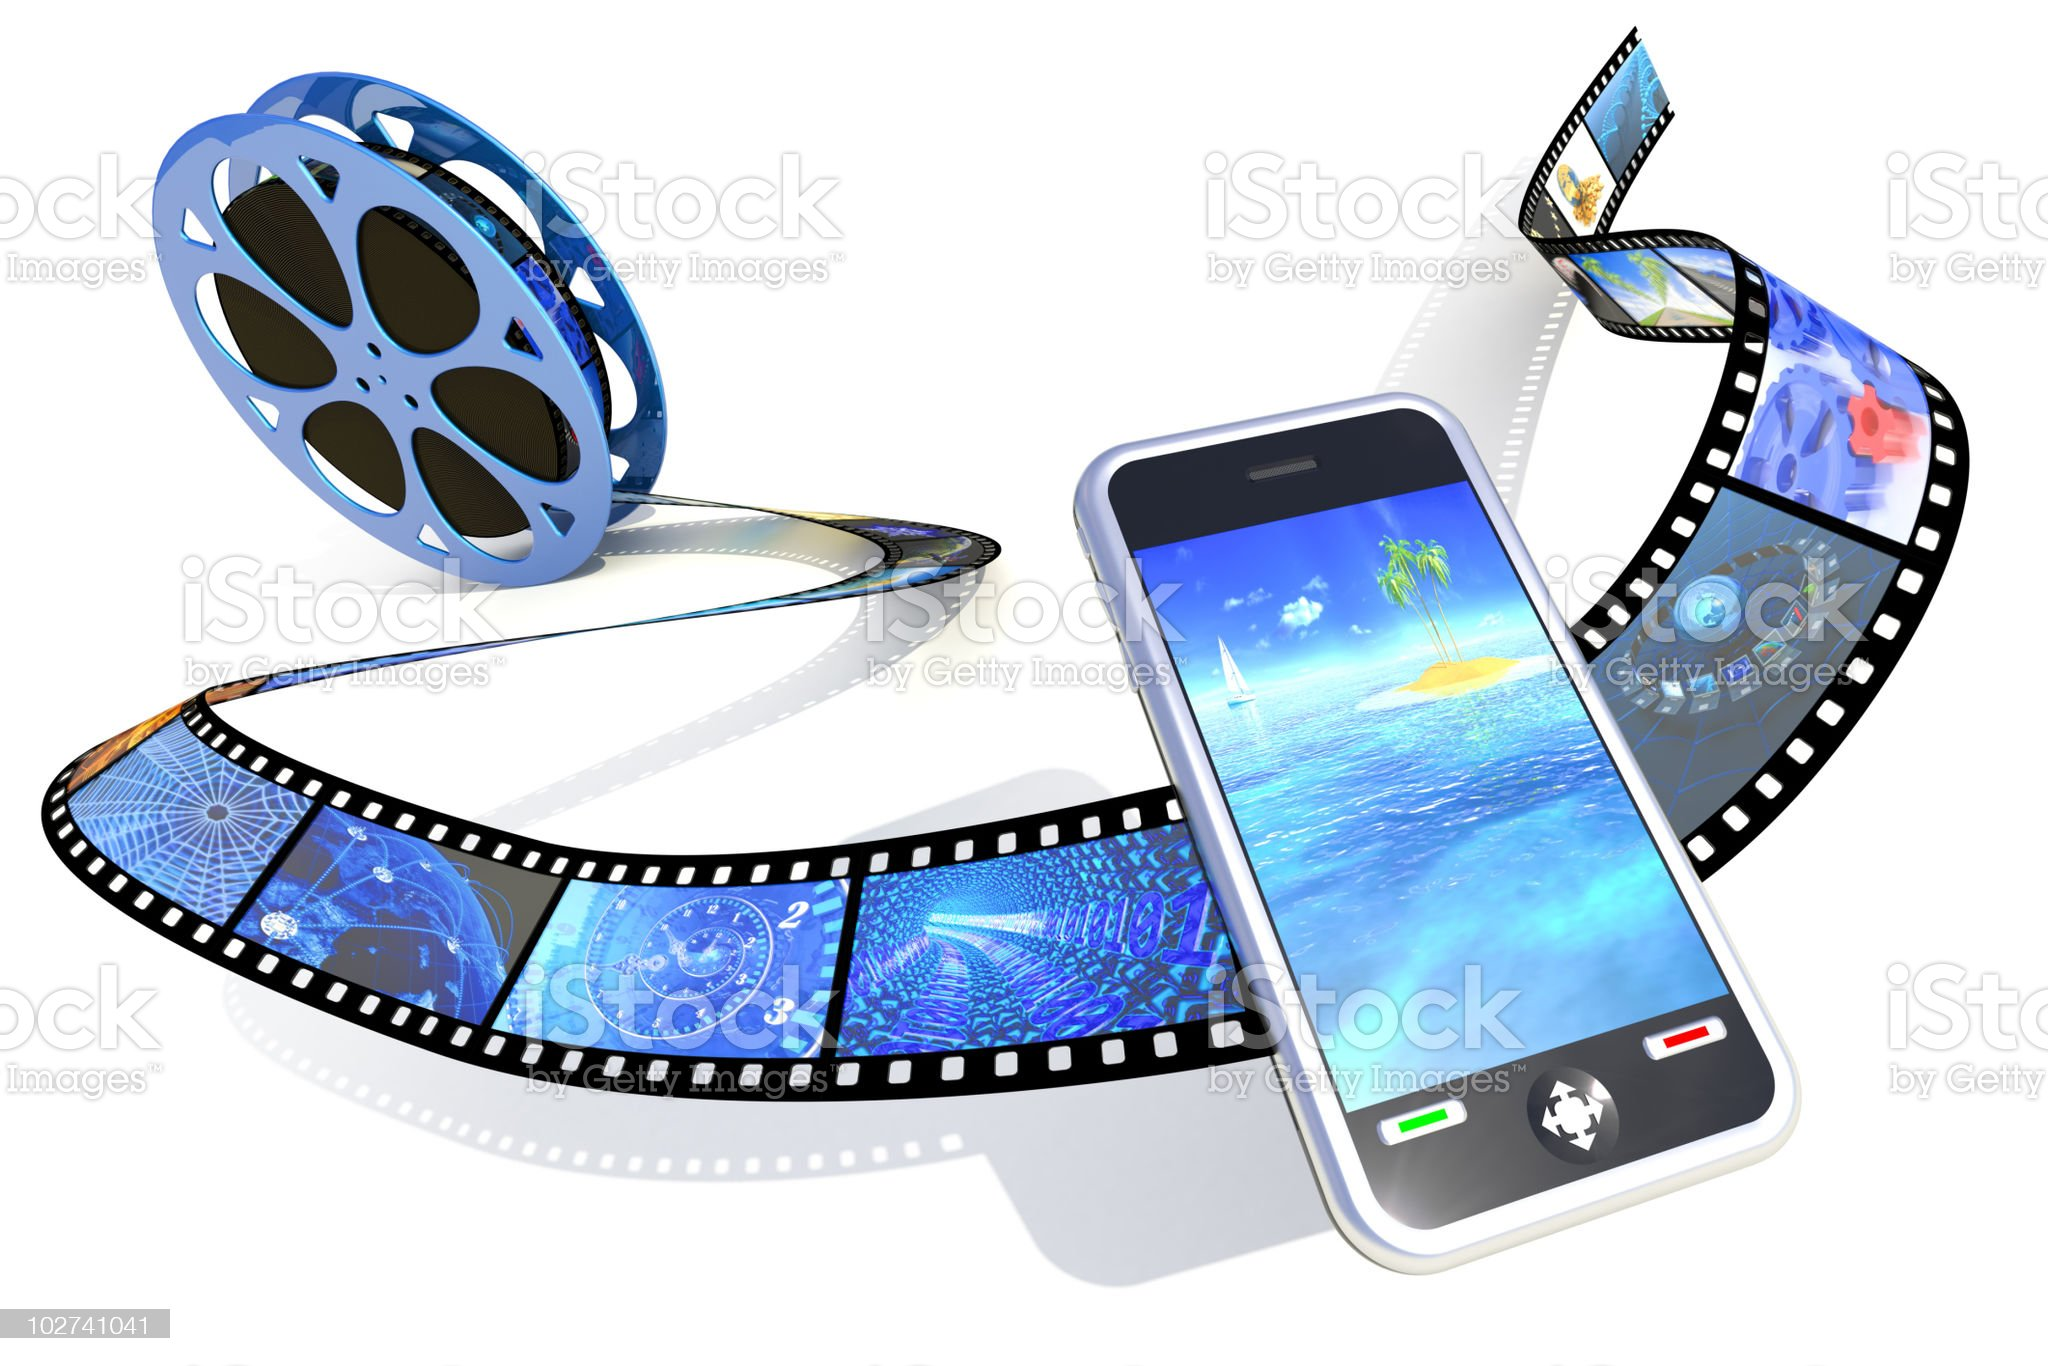 Graphic of movie reel with smartphone in foreground royalty-free stock photo